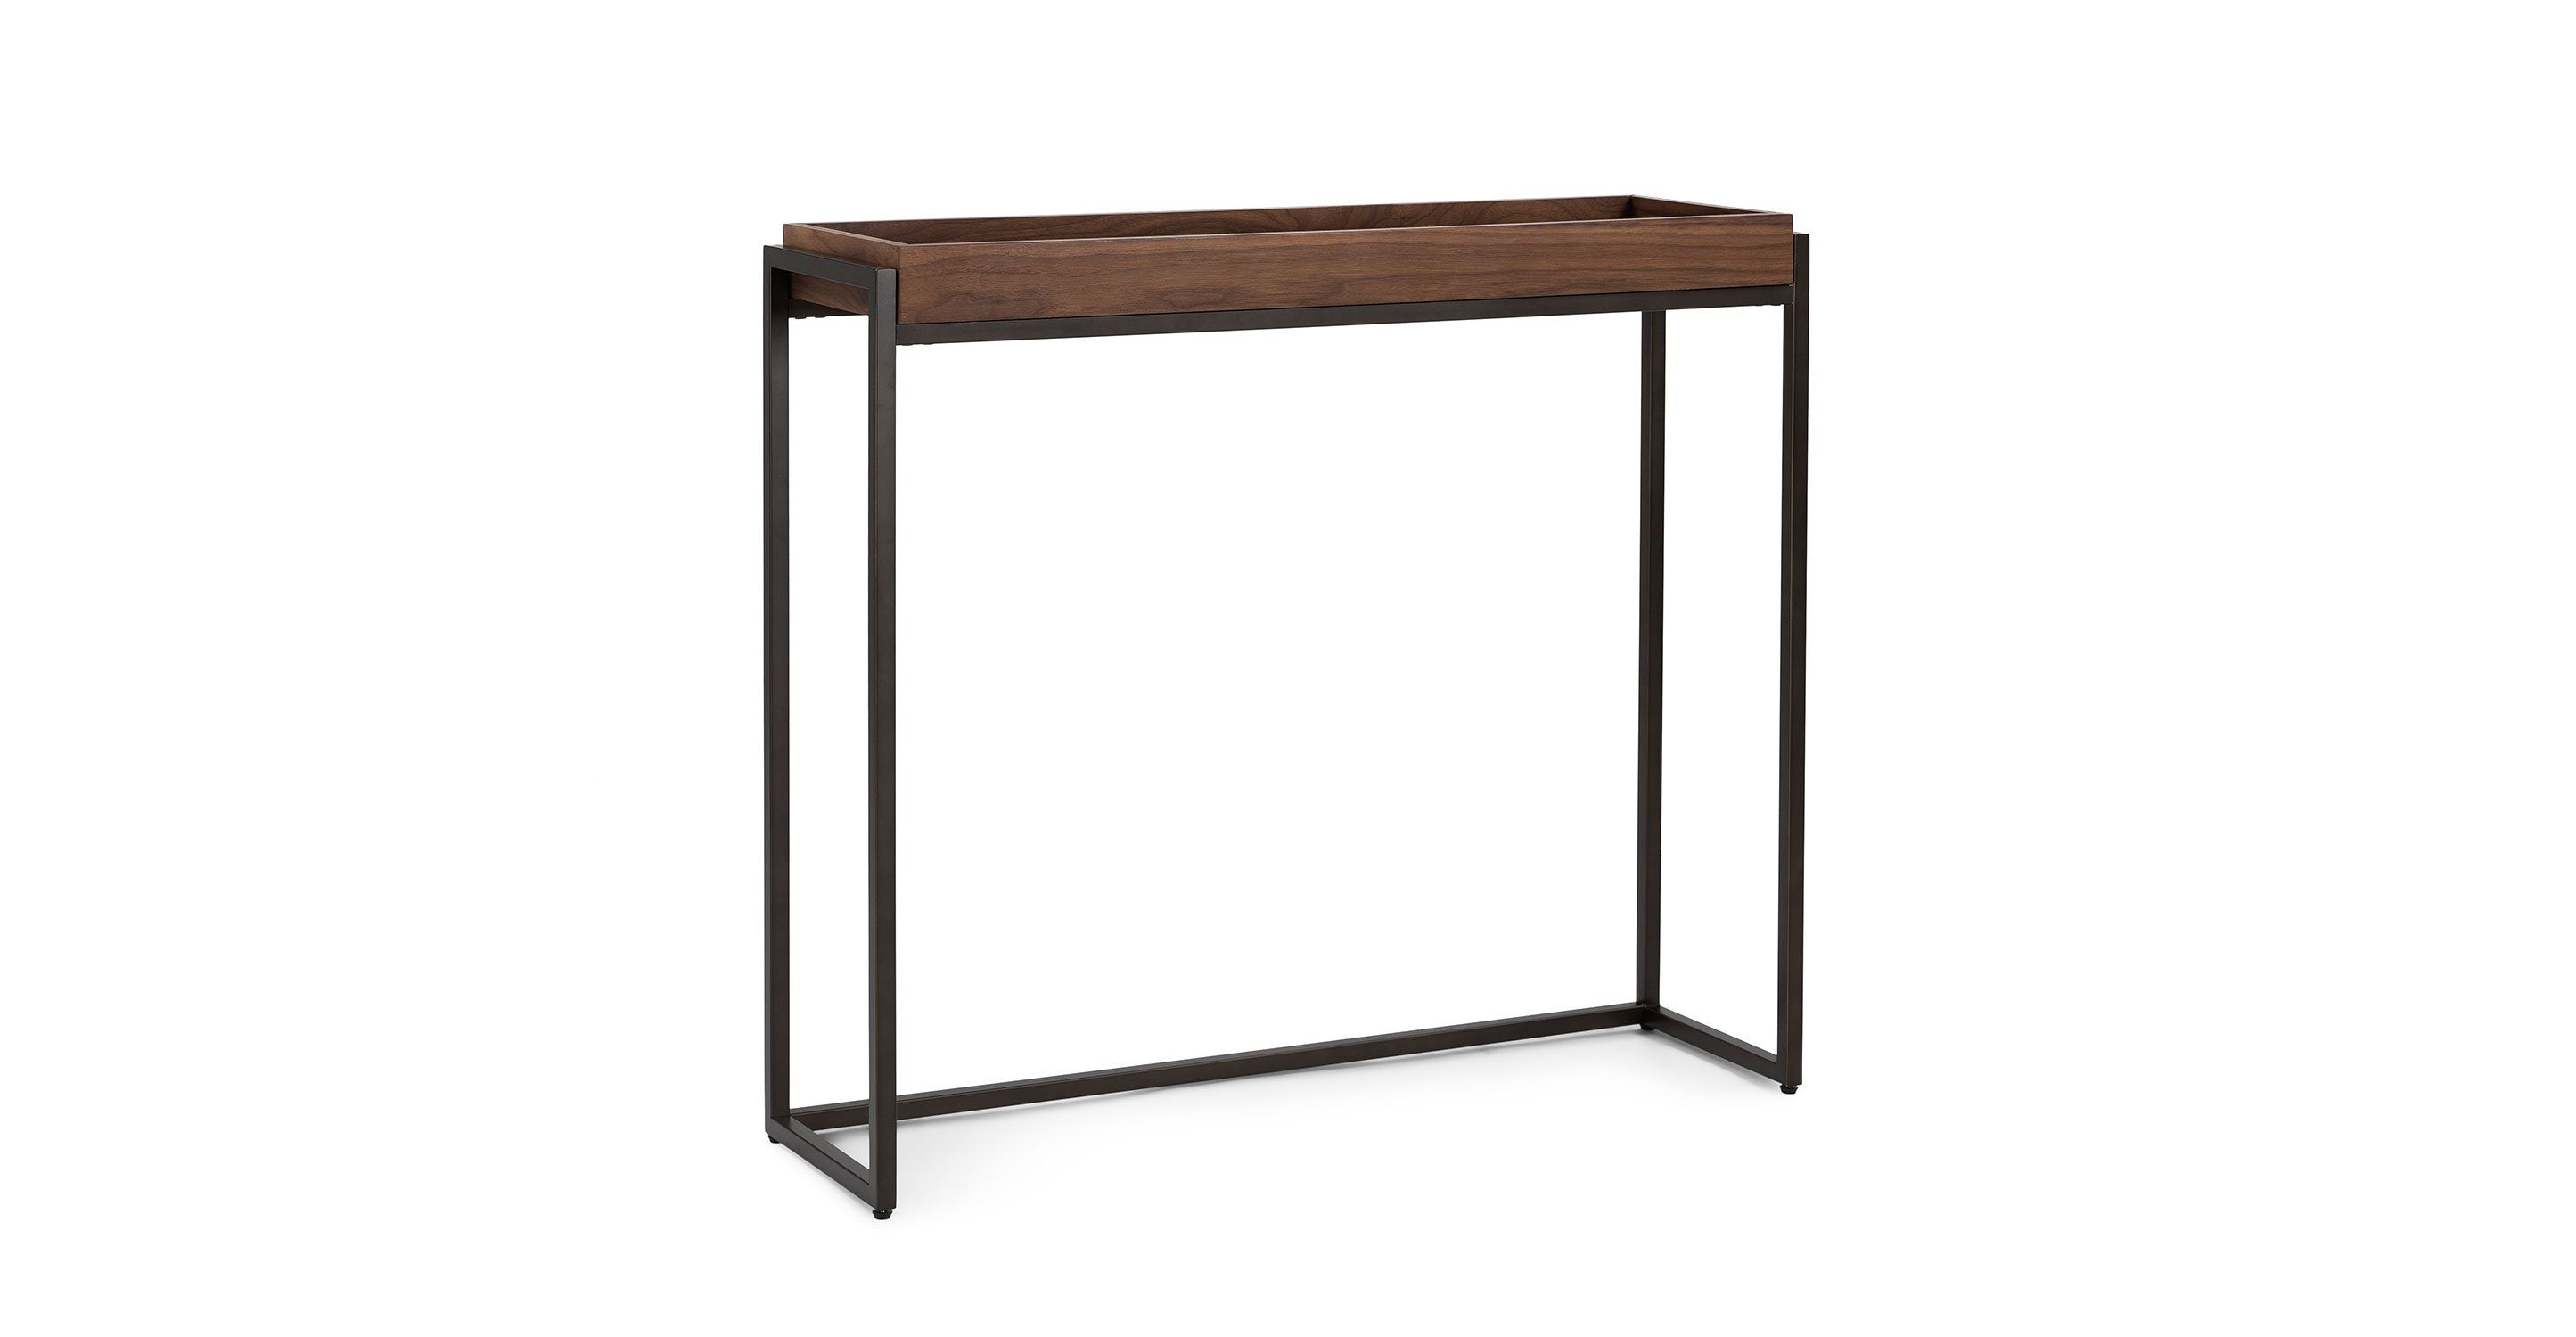 Oscuro Walnut Console Regarding Parsons Walnut Top & Brass Base 48x16 Console Tables (View 16 of 20)